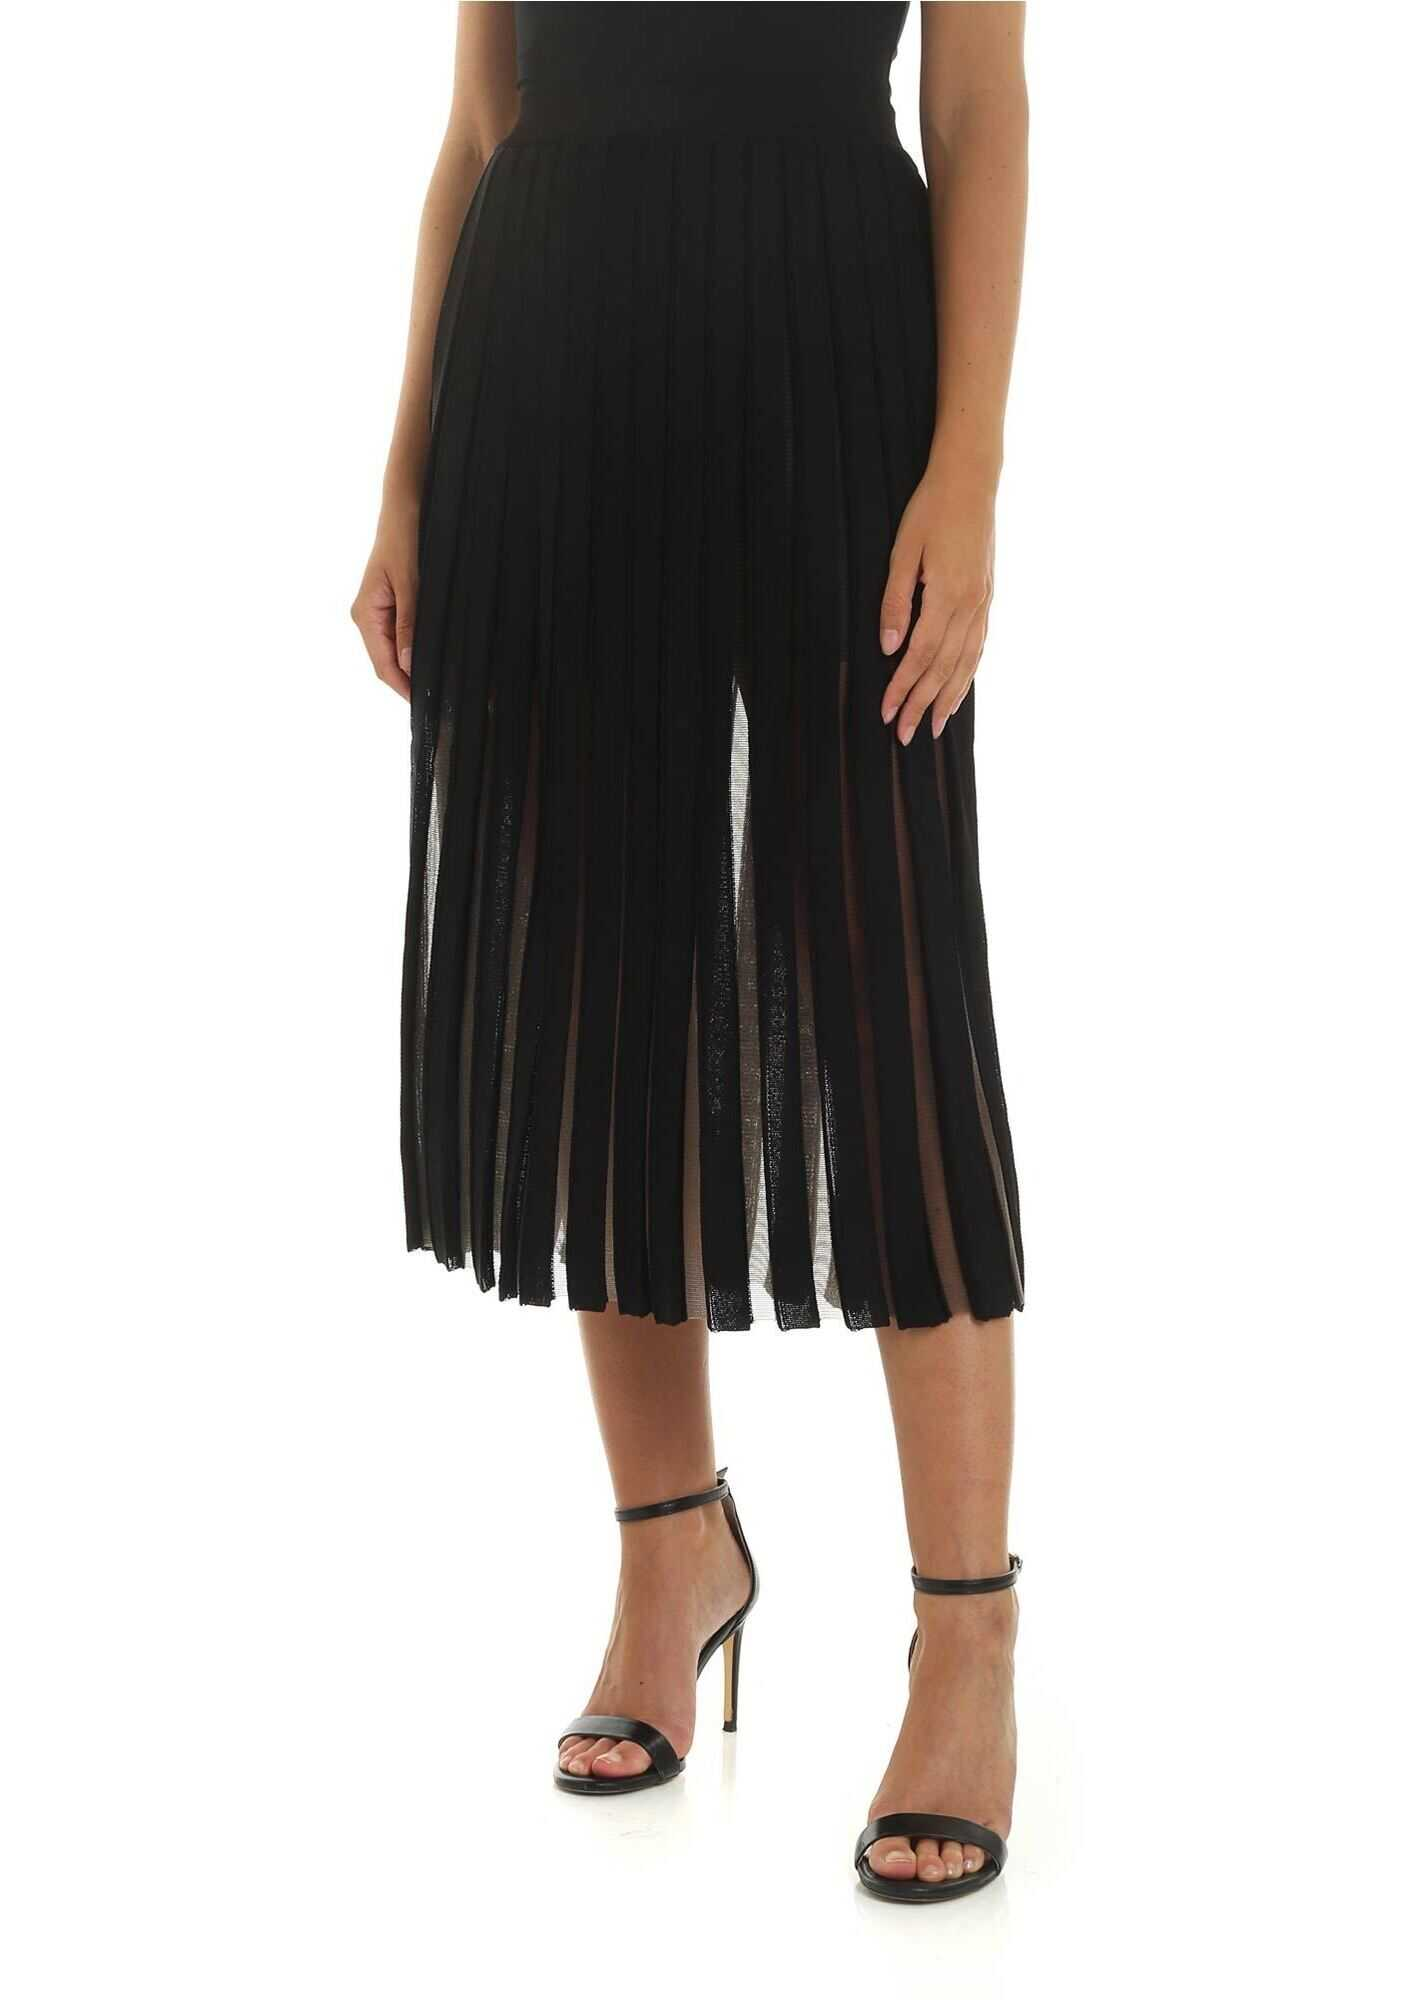 Balmain Black And Transparent Pleated Skirt Black